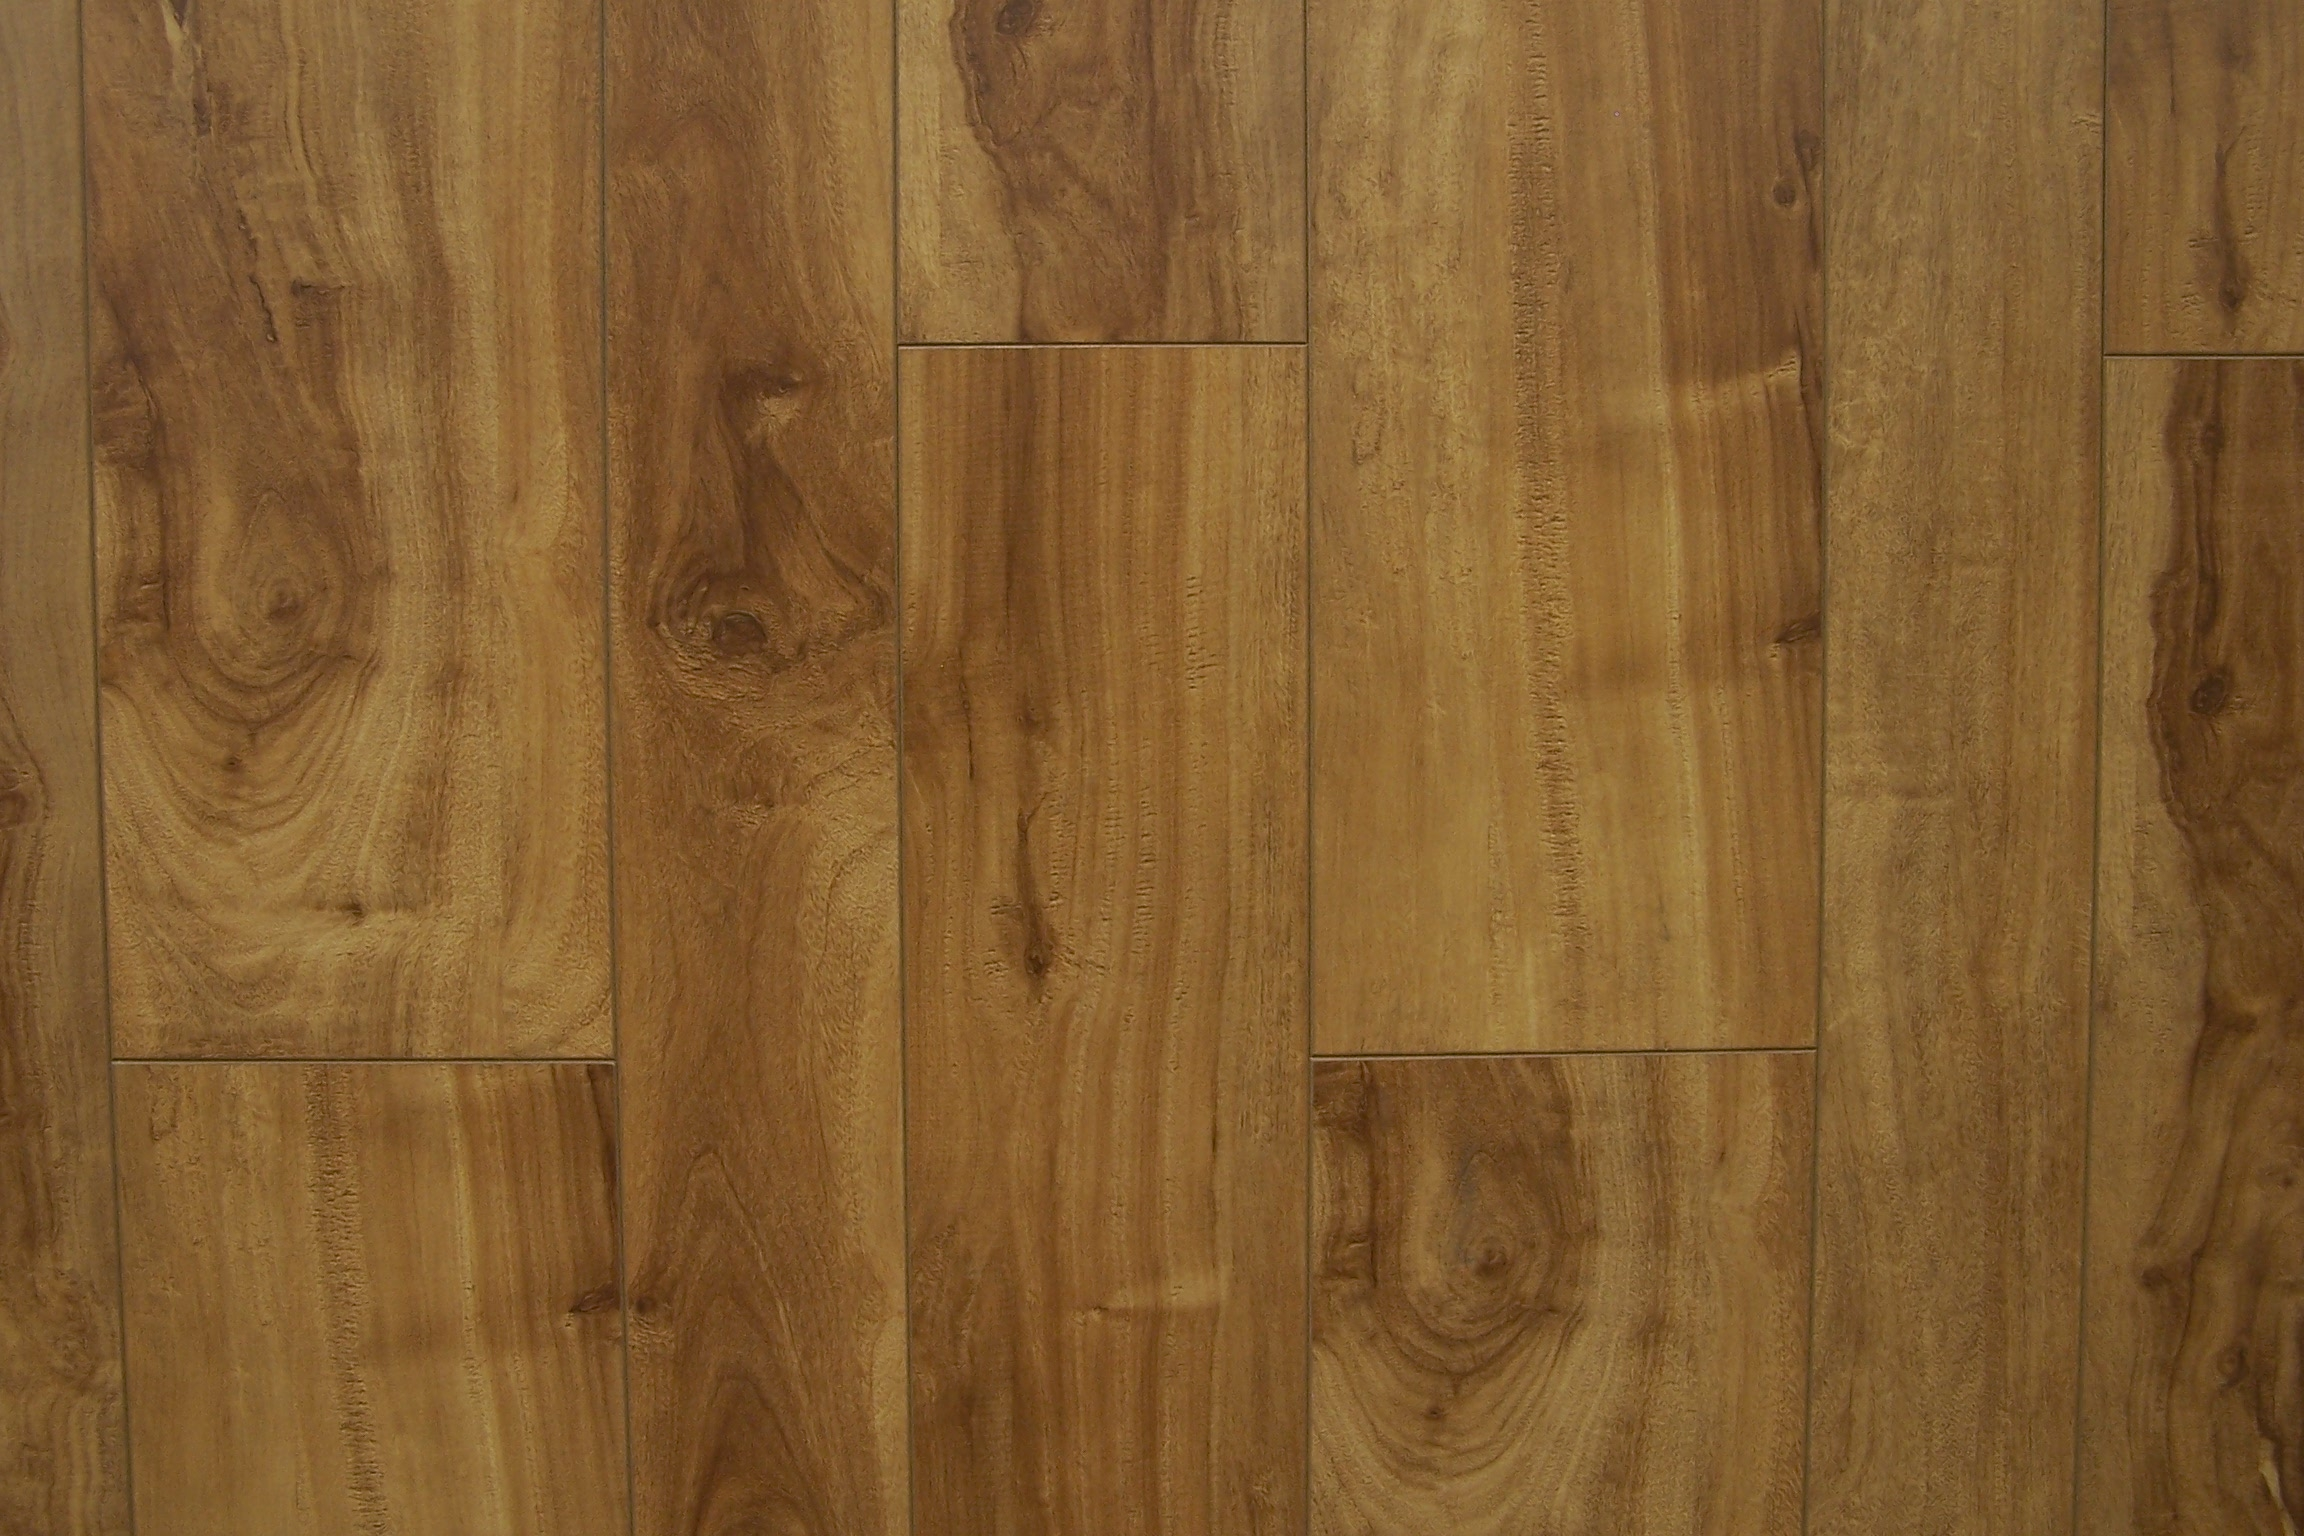 Bella Cera Laminate Wood Flooring